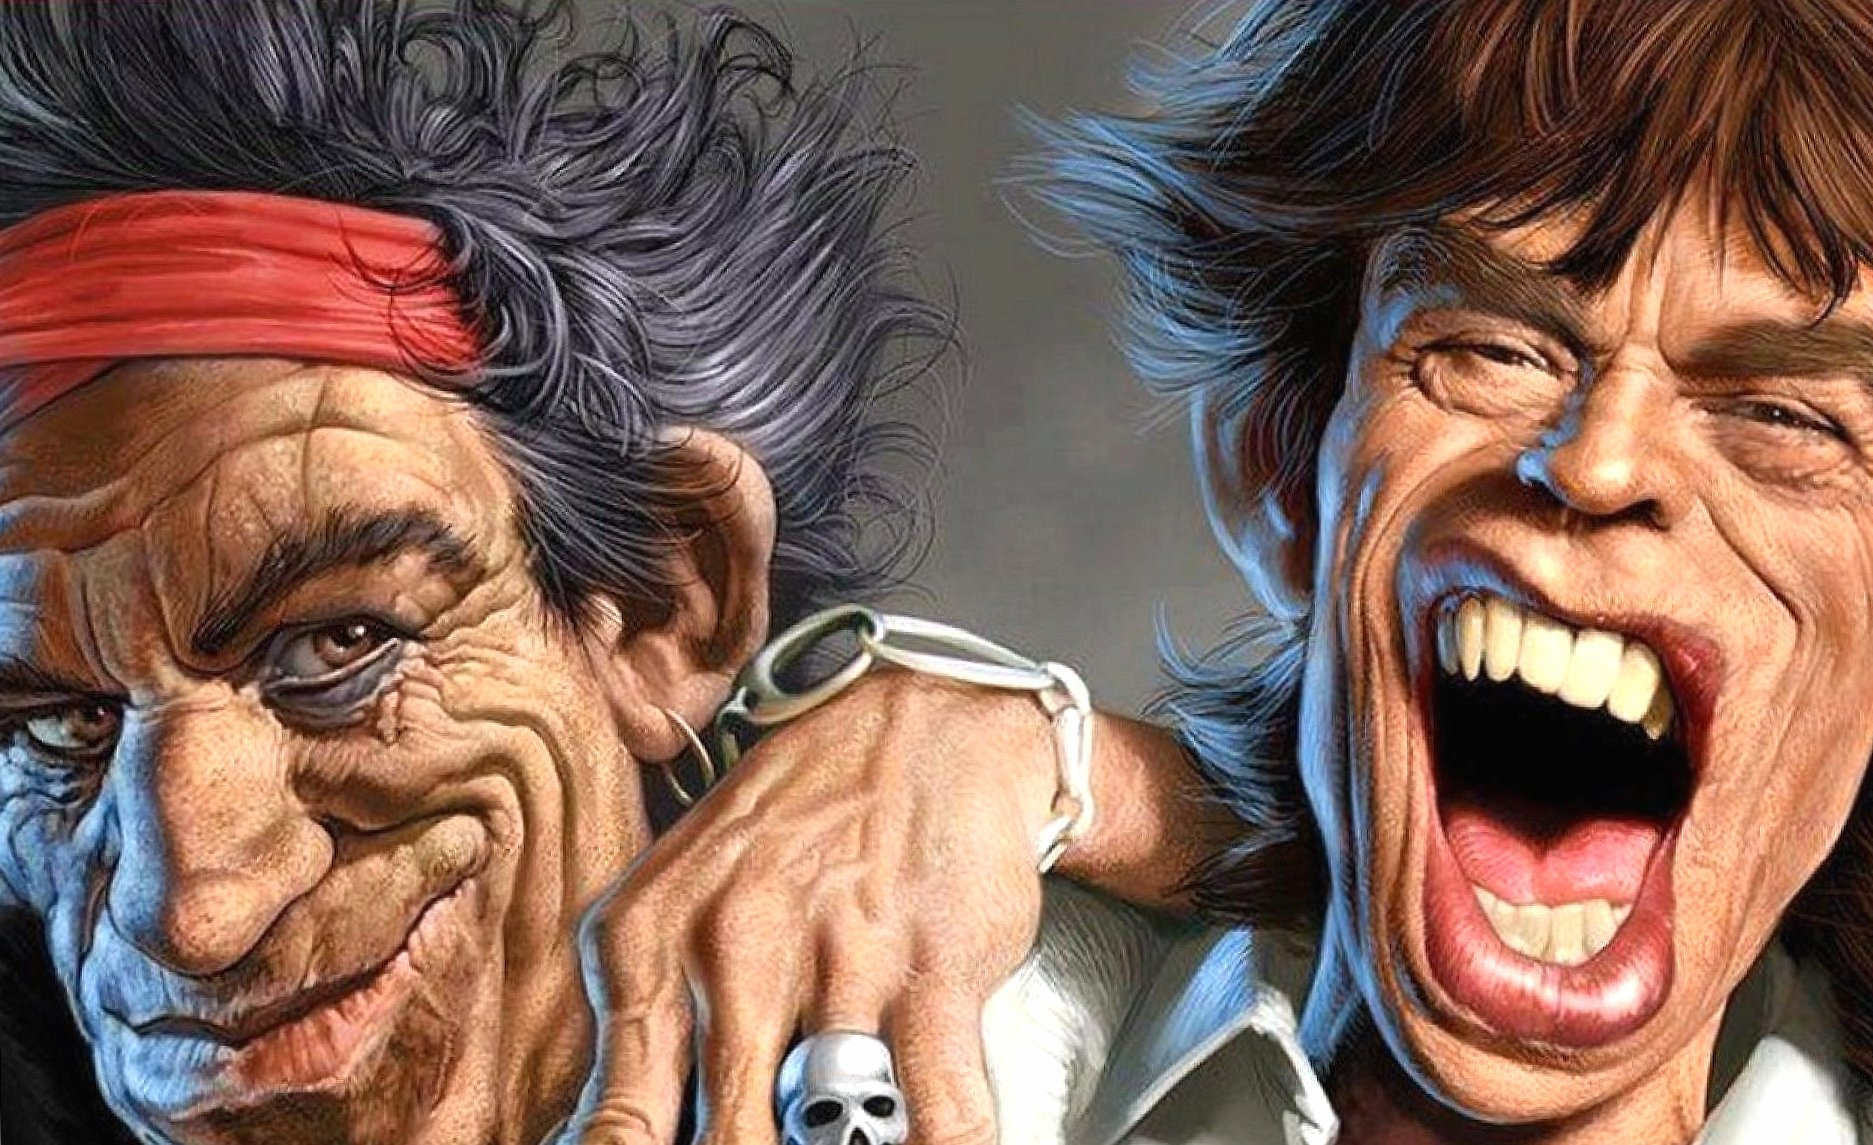 Funny rolling stones caricature mick jagger wallpapers HD quality